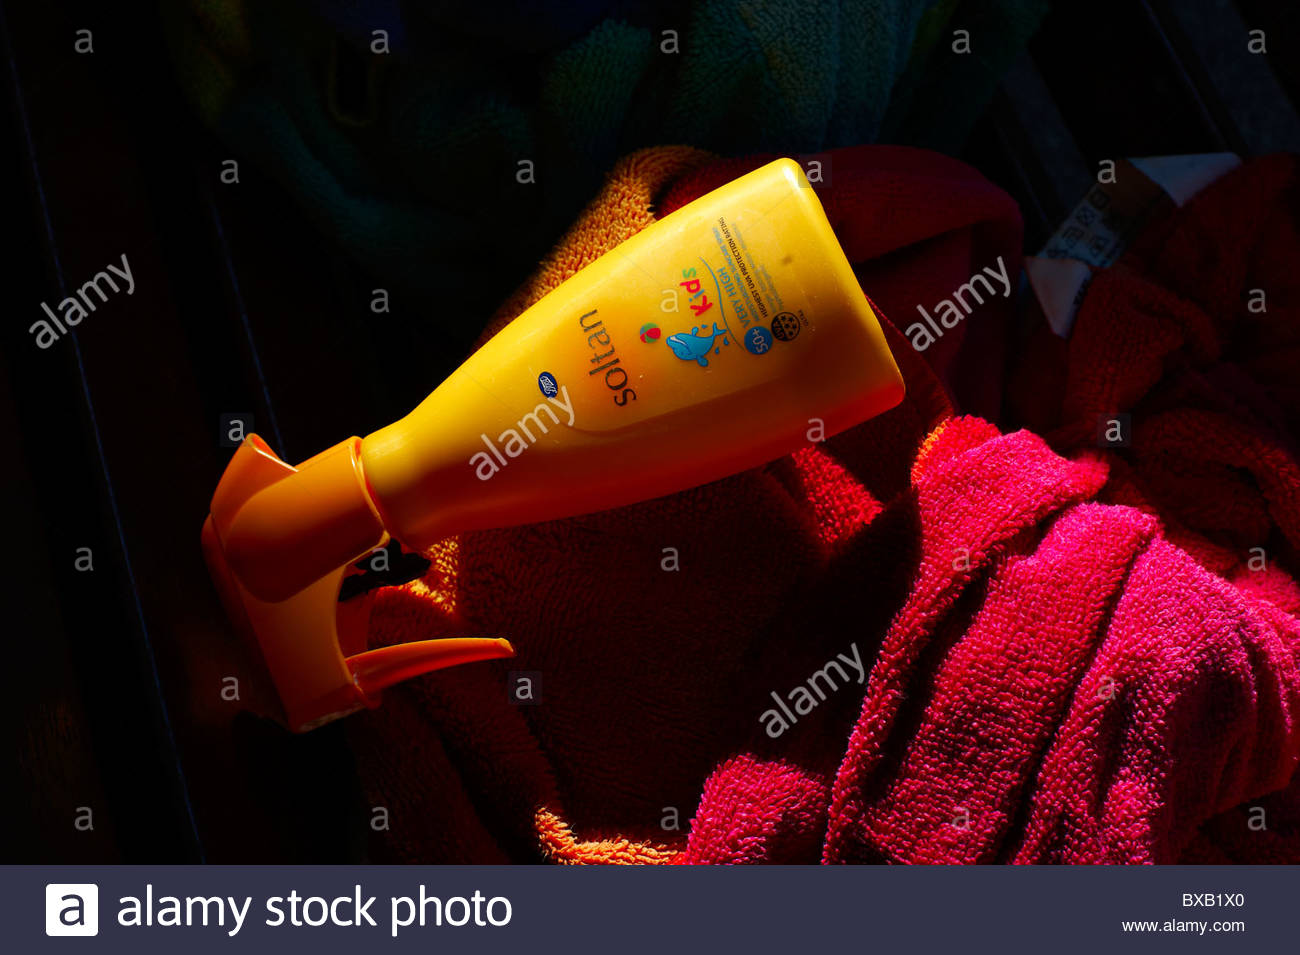 A Bottle of Sun Cream Lotion in the direct sun poolside with a towel - Stock Image